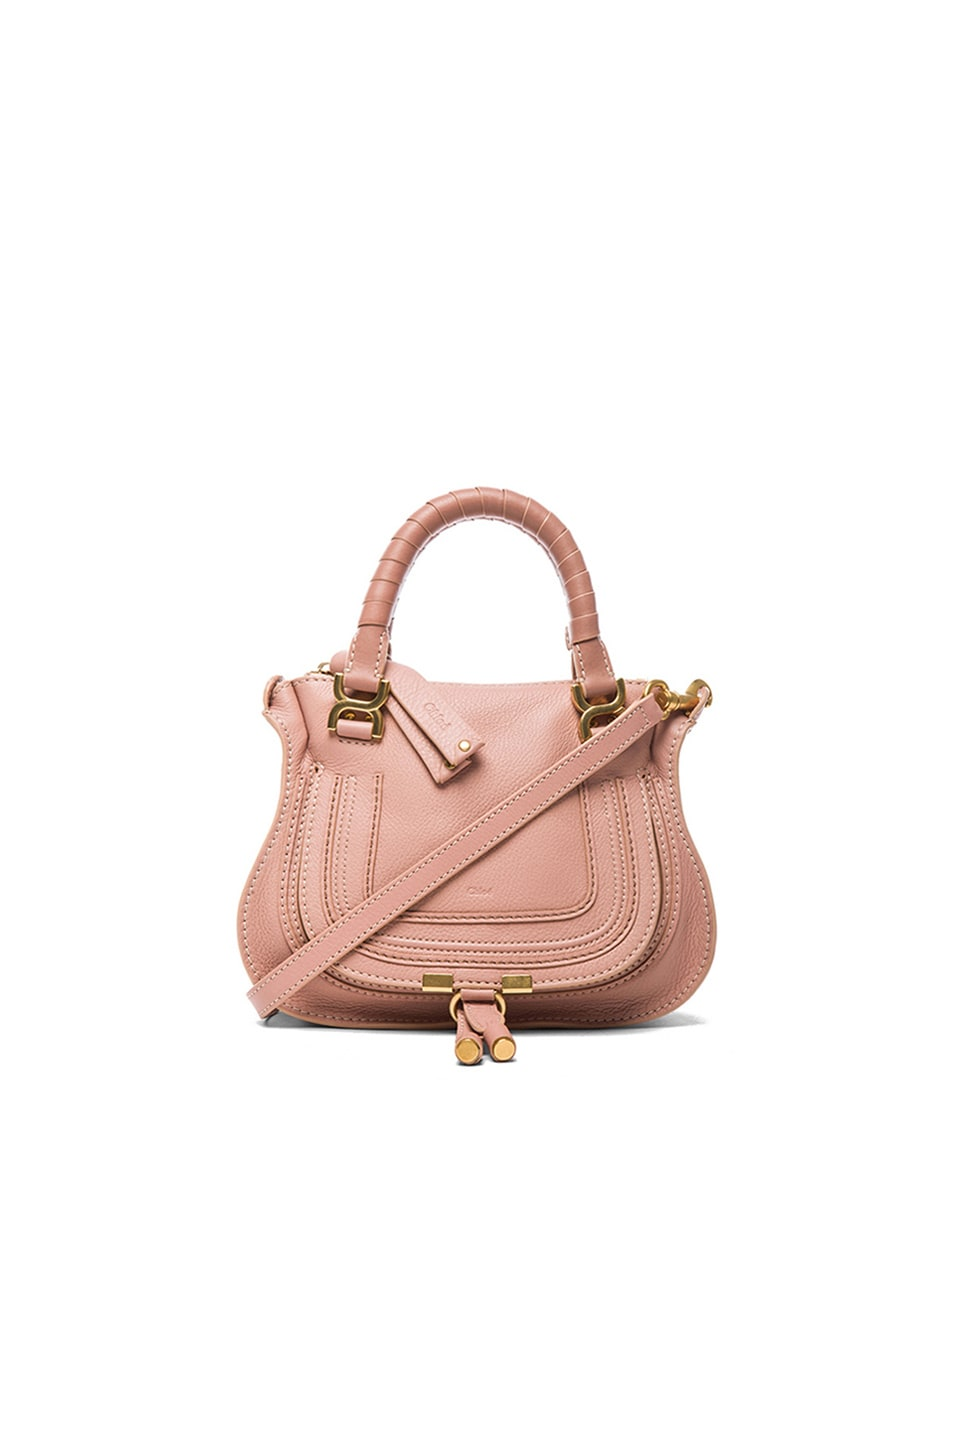 Image 1 of Chloe Mini Marcie Bag in Anemone Pink